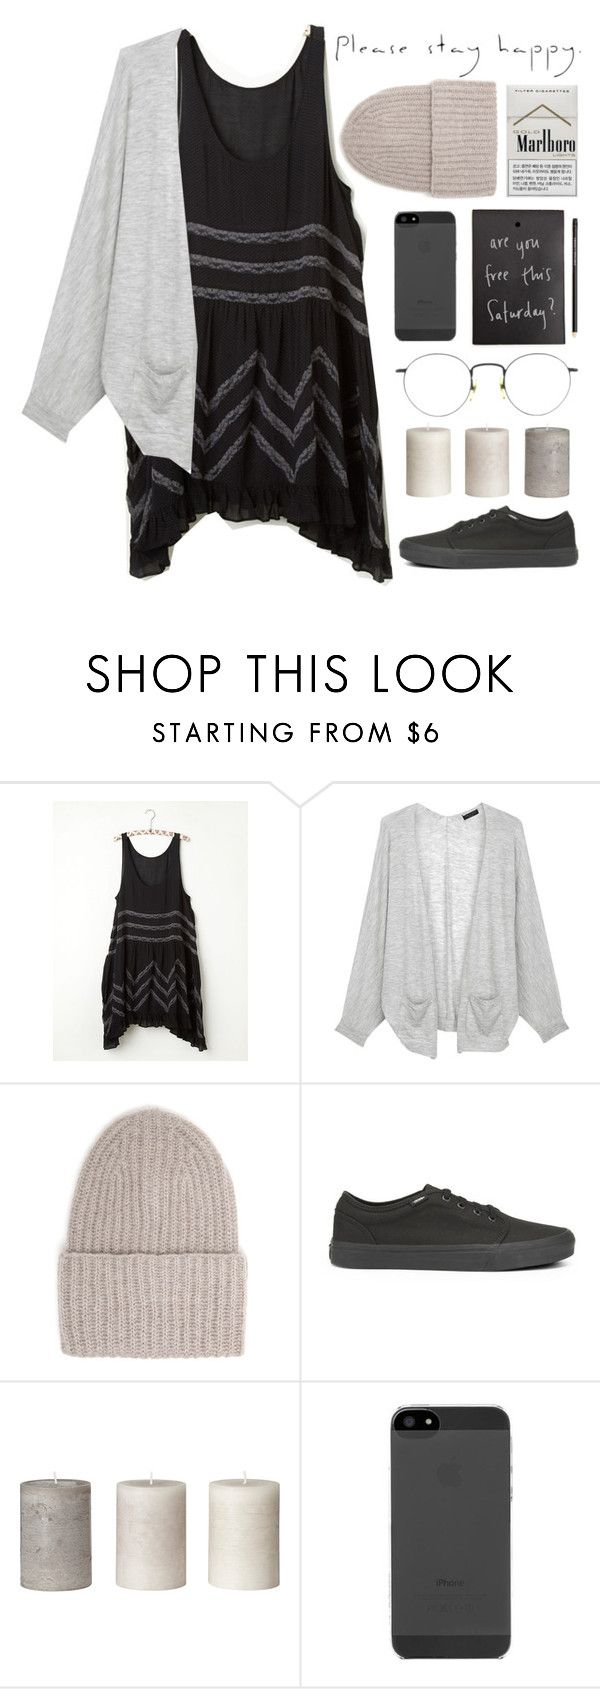 """Forgotten"" by thalia-h ❤ liked on Polyvore featuring Free People, rag & bone, Tak.Ori and Vans"